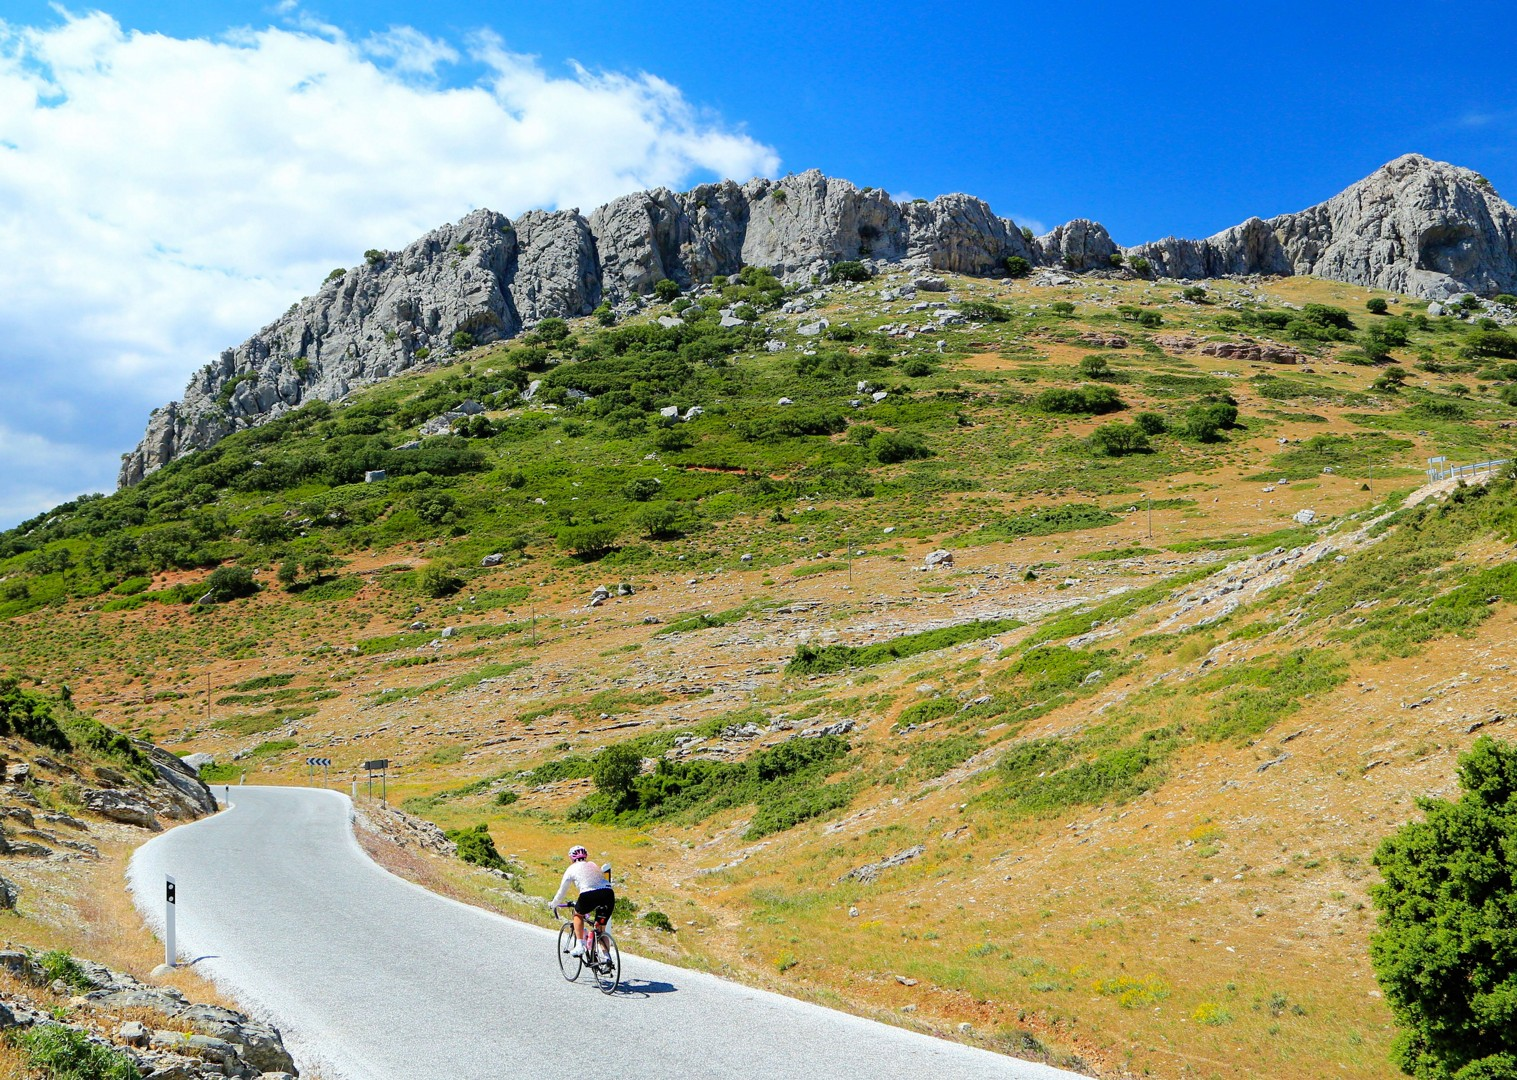 road-cycling-in-basque-country-to-andalucia.jpg - Spain - Del Norte al Sur - Basque Country to Andalucia - Guided Road Cycling Holiday - Road Cycling